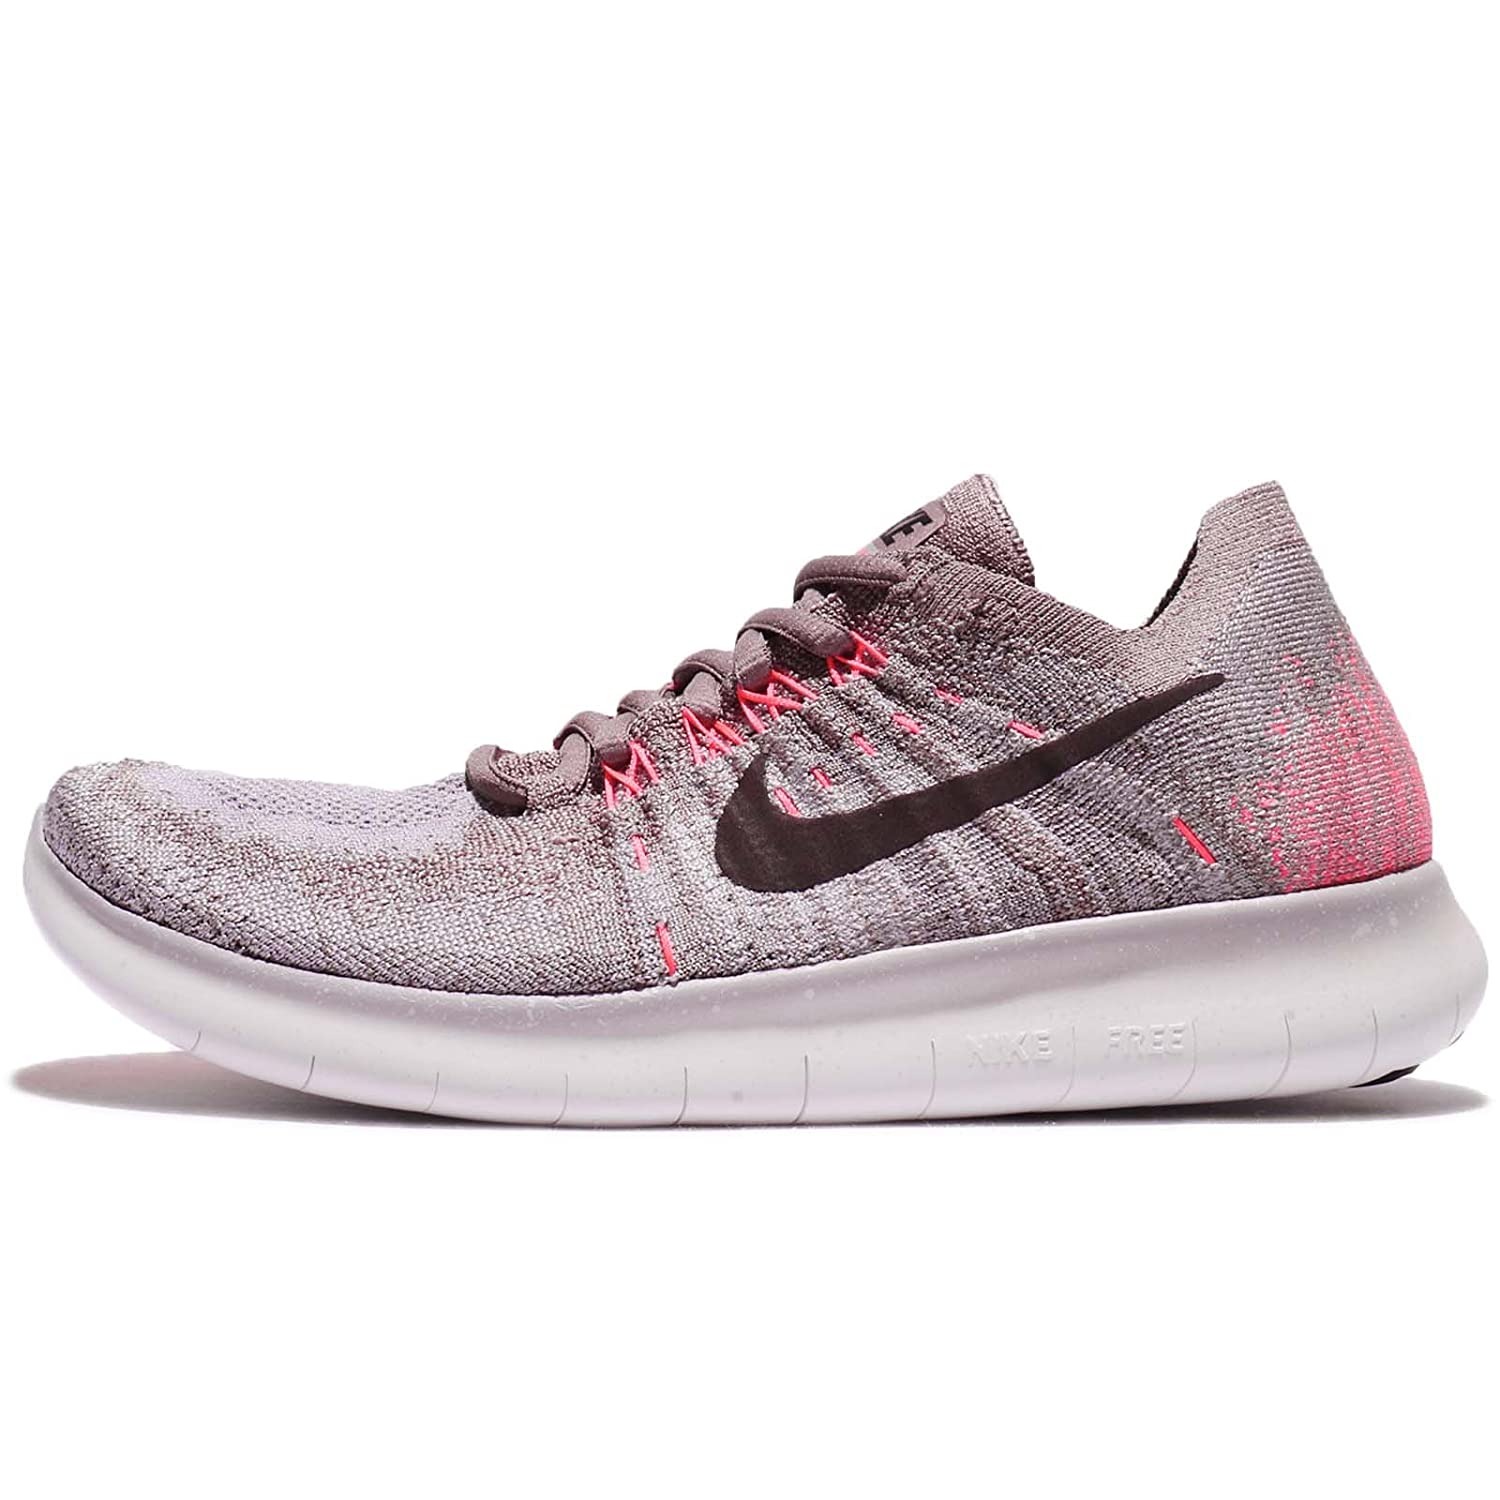 NIKE Women's Free RN Flyknit 2017 Running Shoe B074D6S3JQ 8.5 B(M) US|Taupe Grey/Port Wine-solar Red